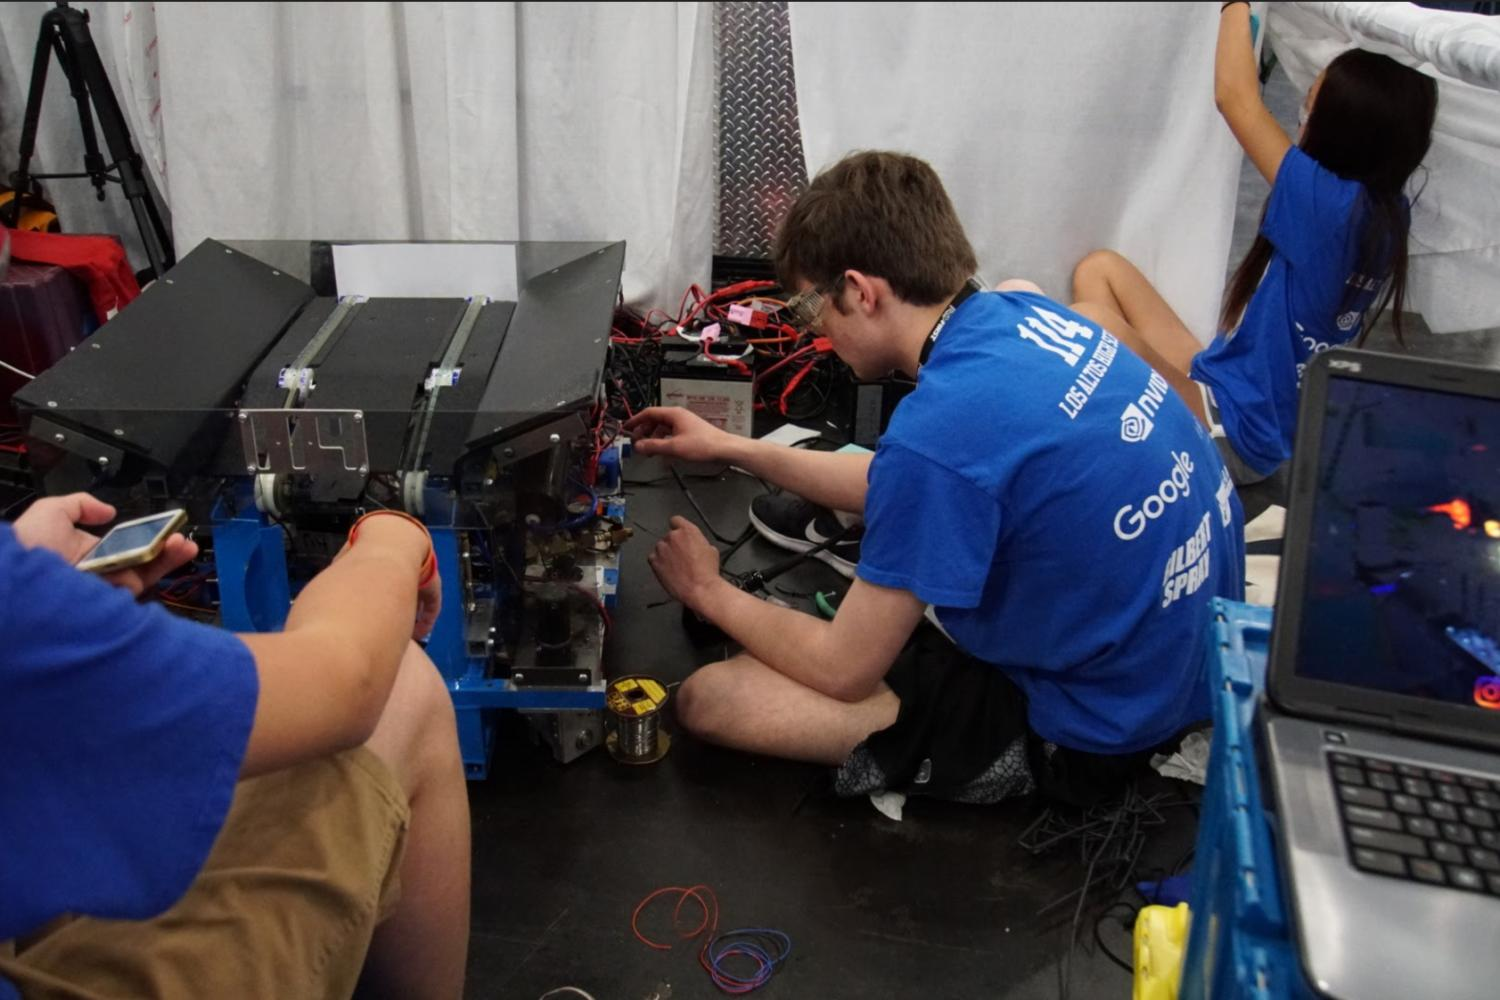 Drive+team+members+Cole+Brinsfield+%28middle%29+and+Michelle+Zhu+%28right%29+race+to+fix+the+wiring+on+their+robot%27s+drivetrain.